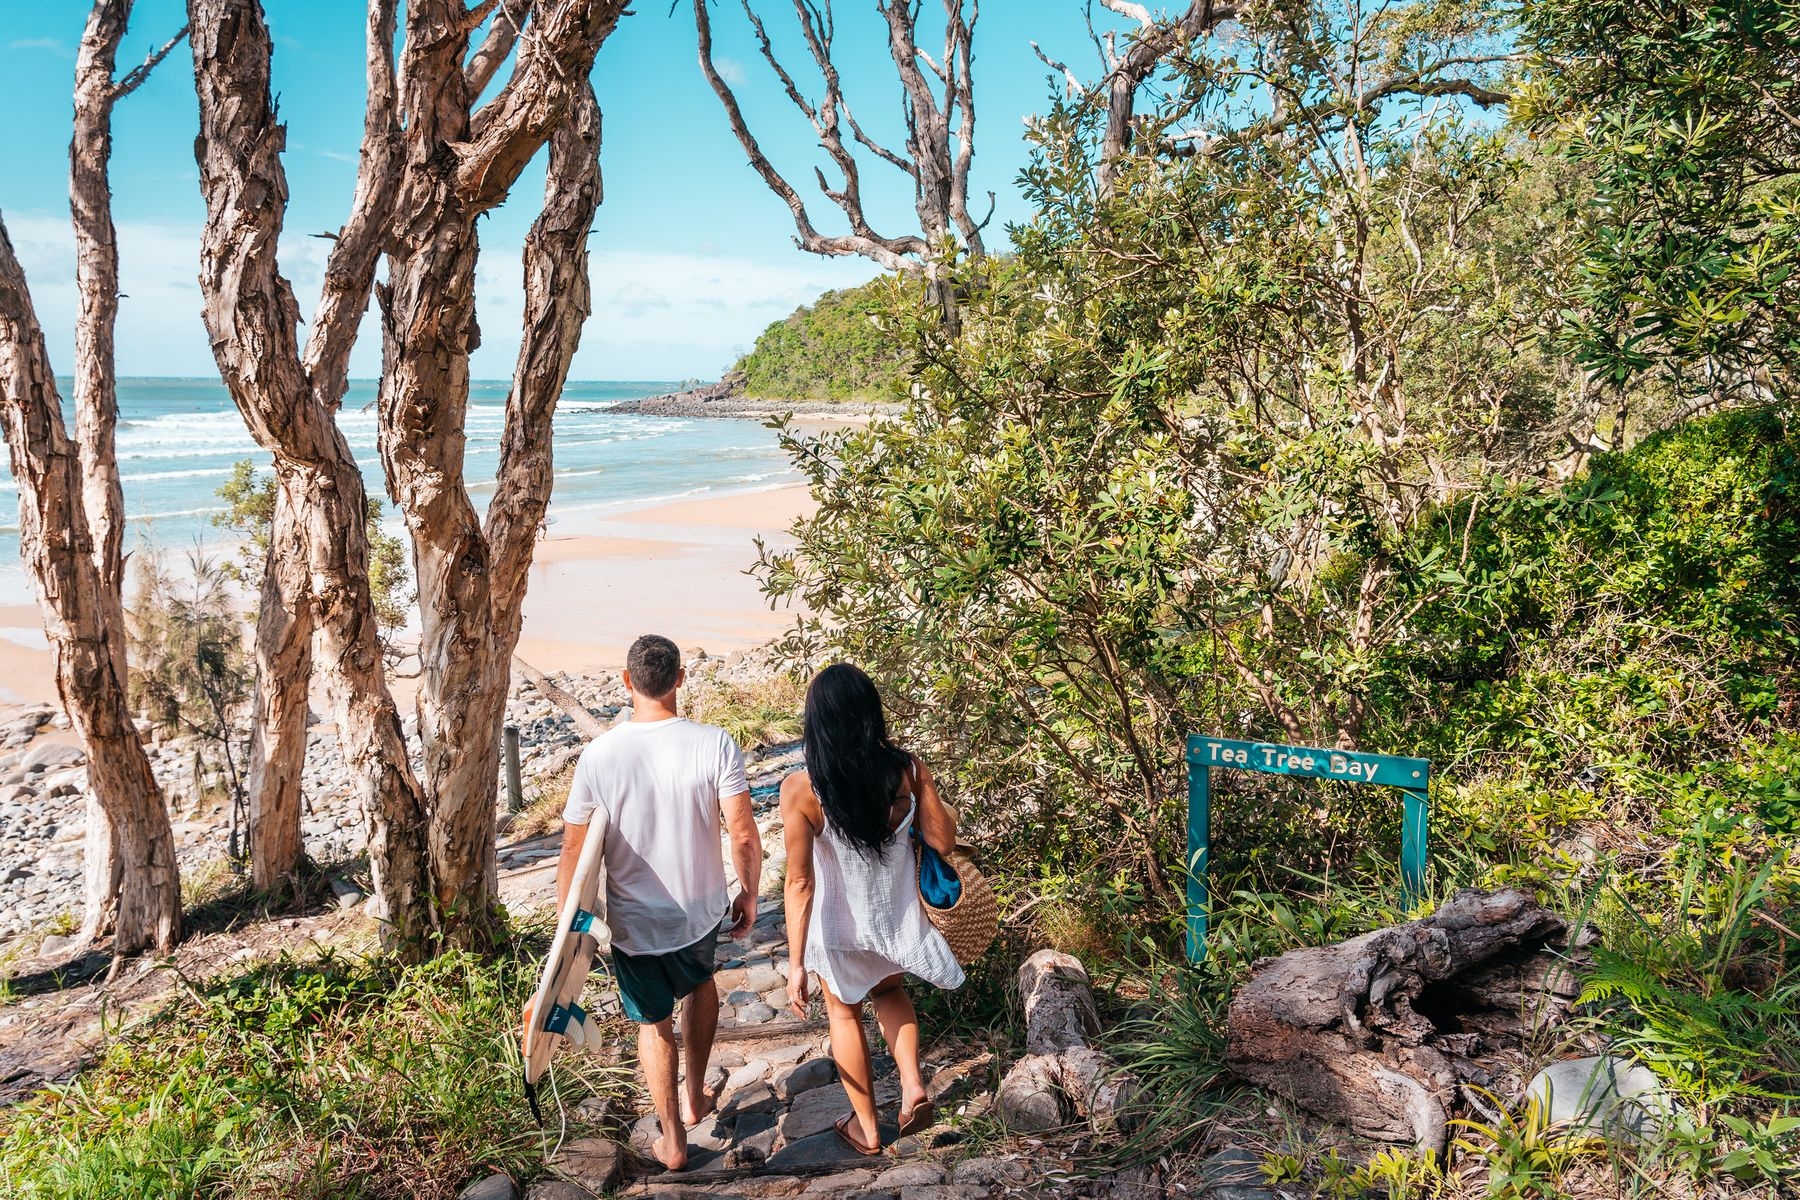 Explore the coastlines and rainforests on holiday in Queensland